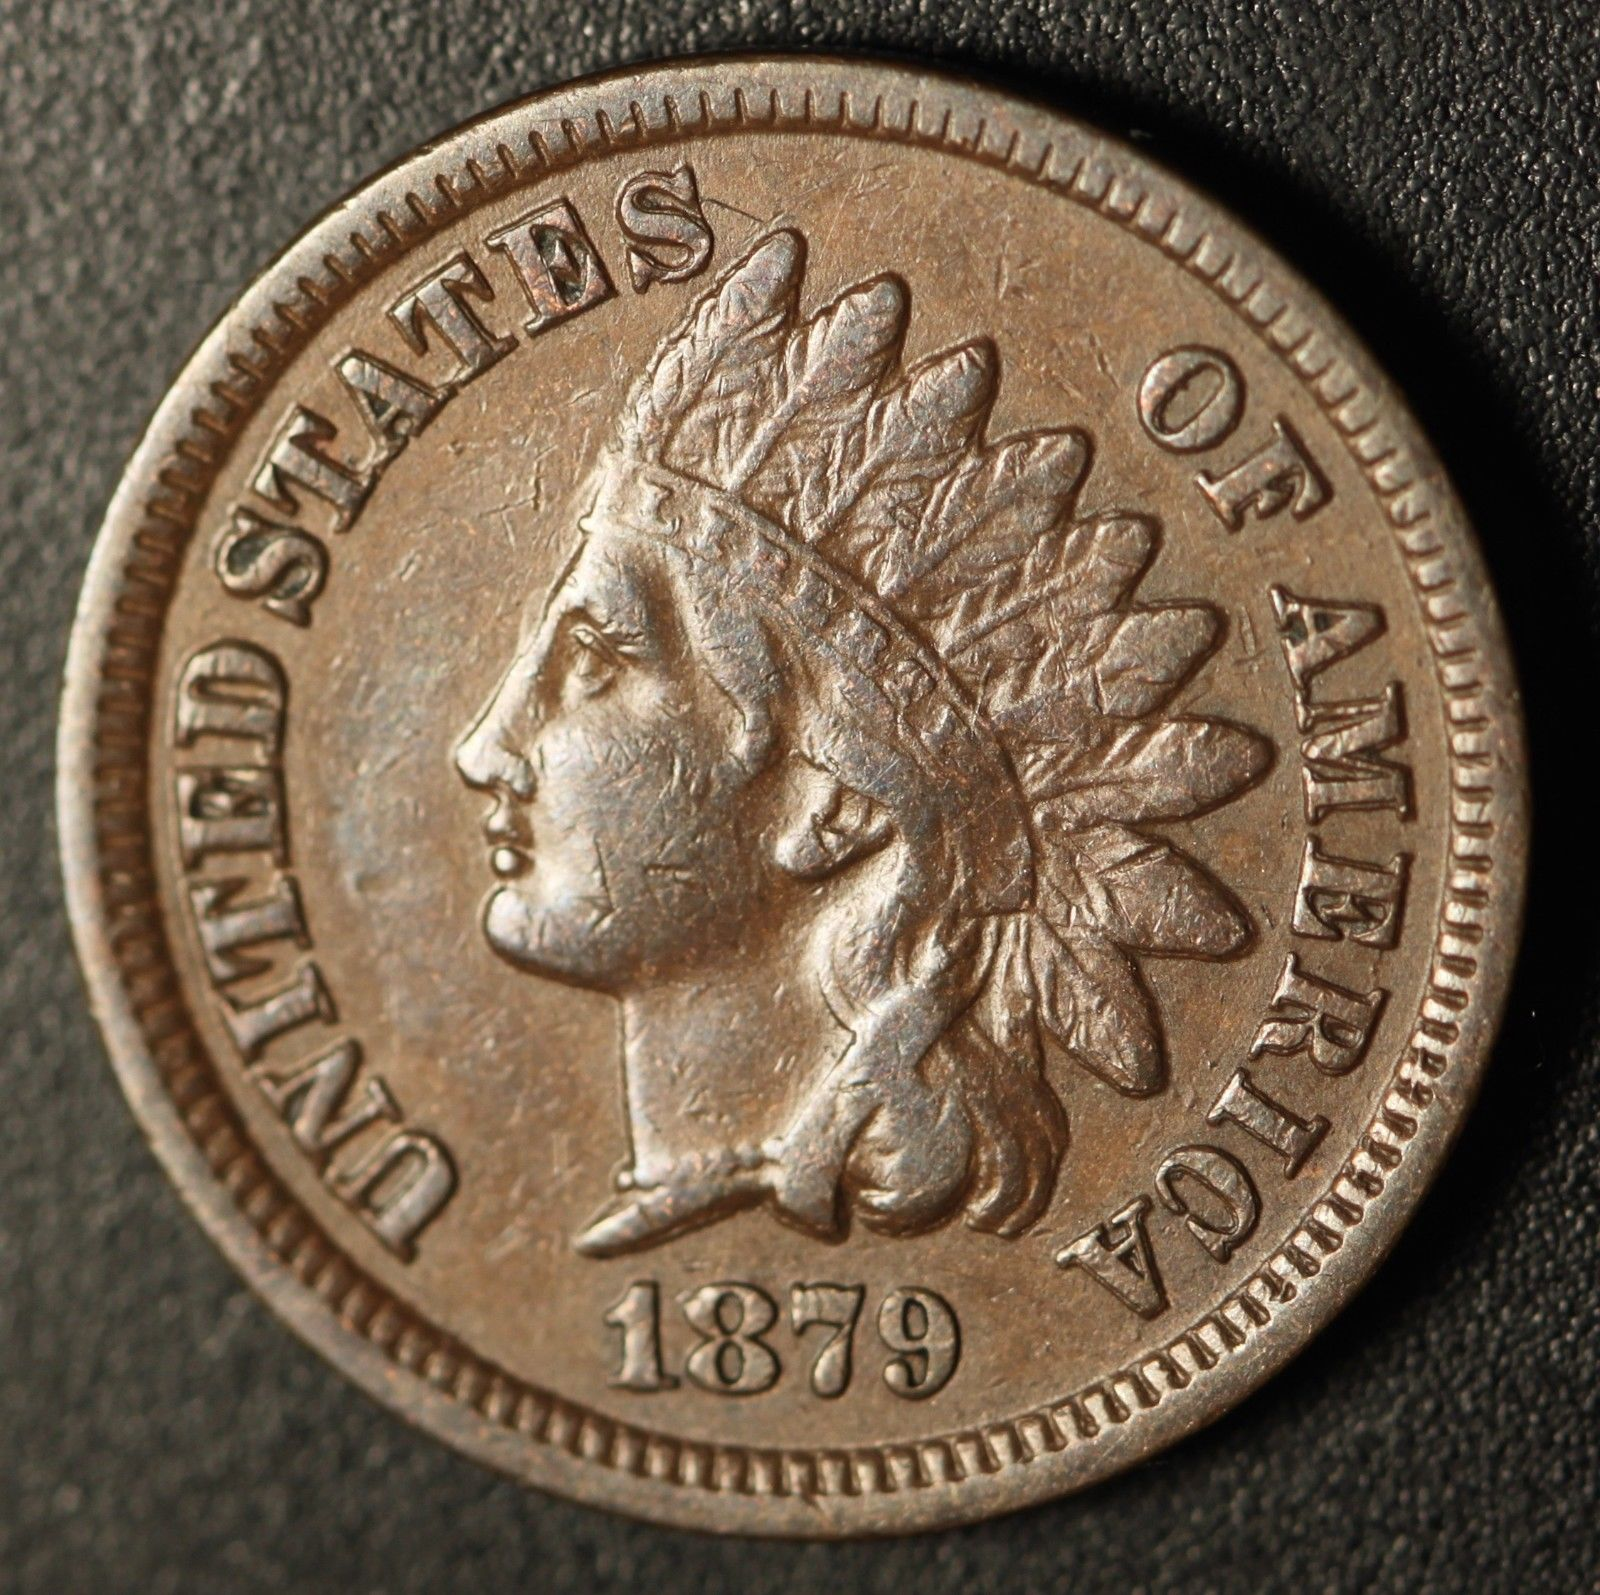 1879 RPD-004 - Indian Head Penny - Photo by Ed Nathanson